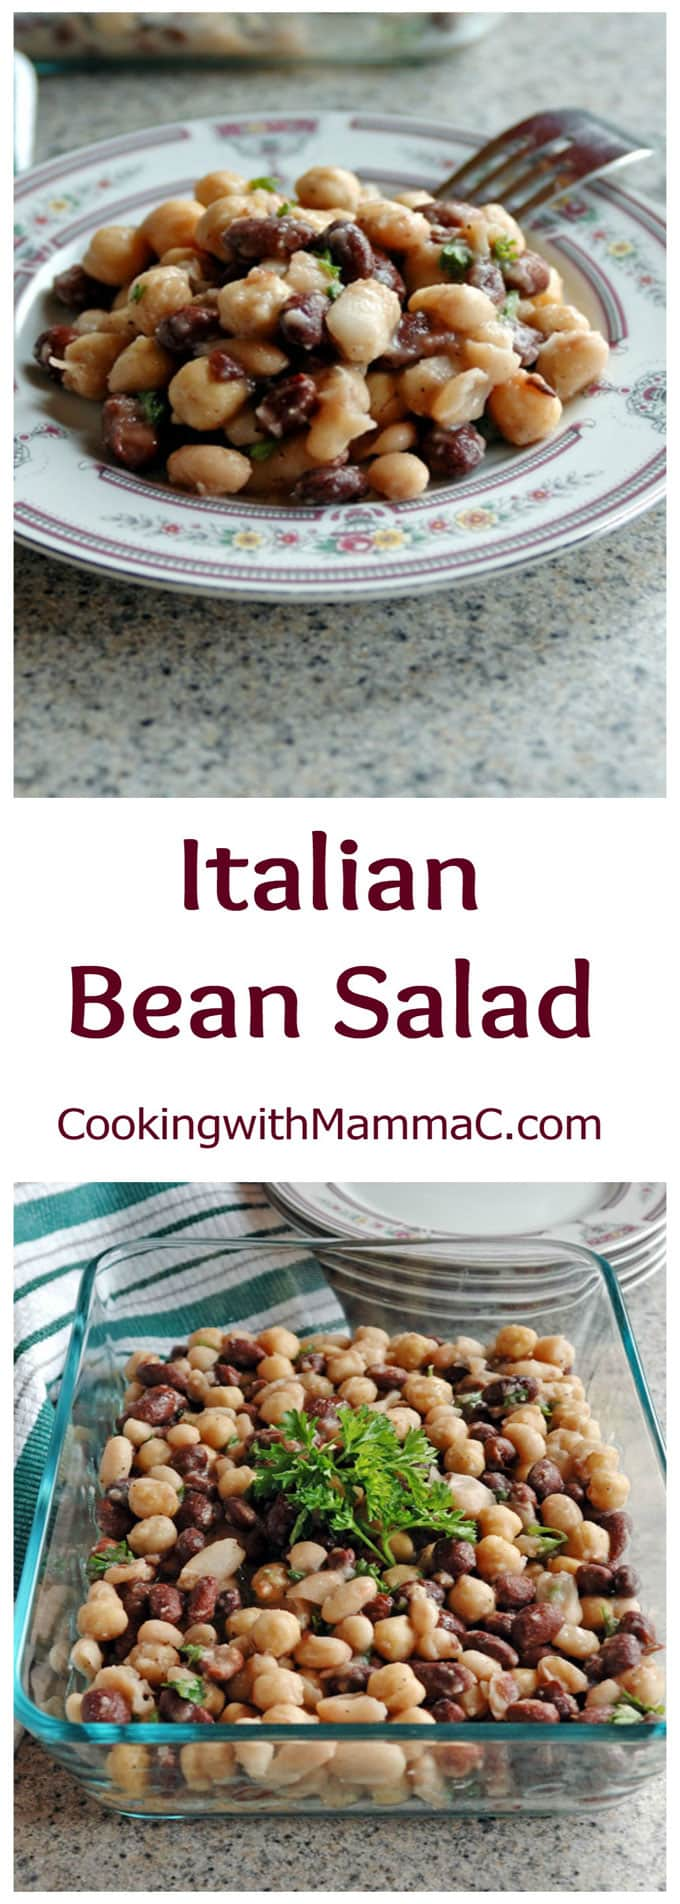 This delicious Italian Bean Salad is quick, easy, vegan and gluten free! Perfect for your next potluck.